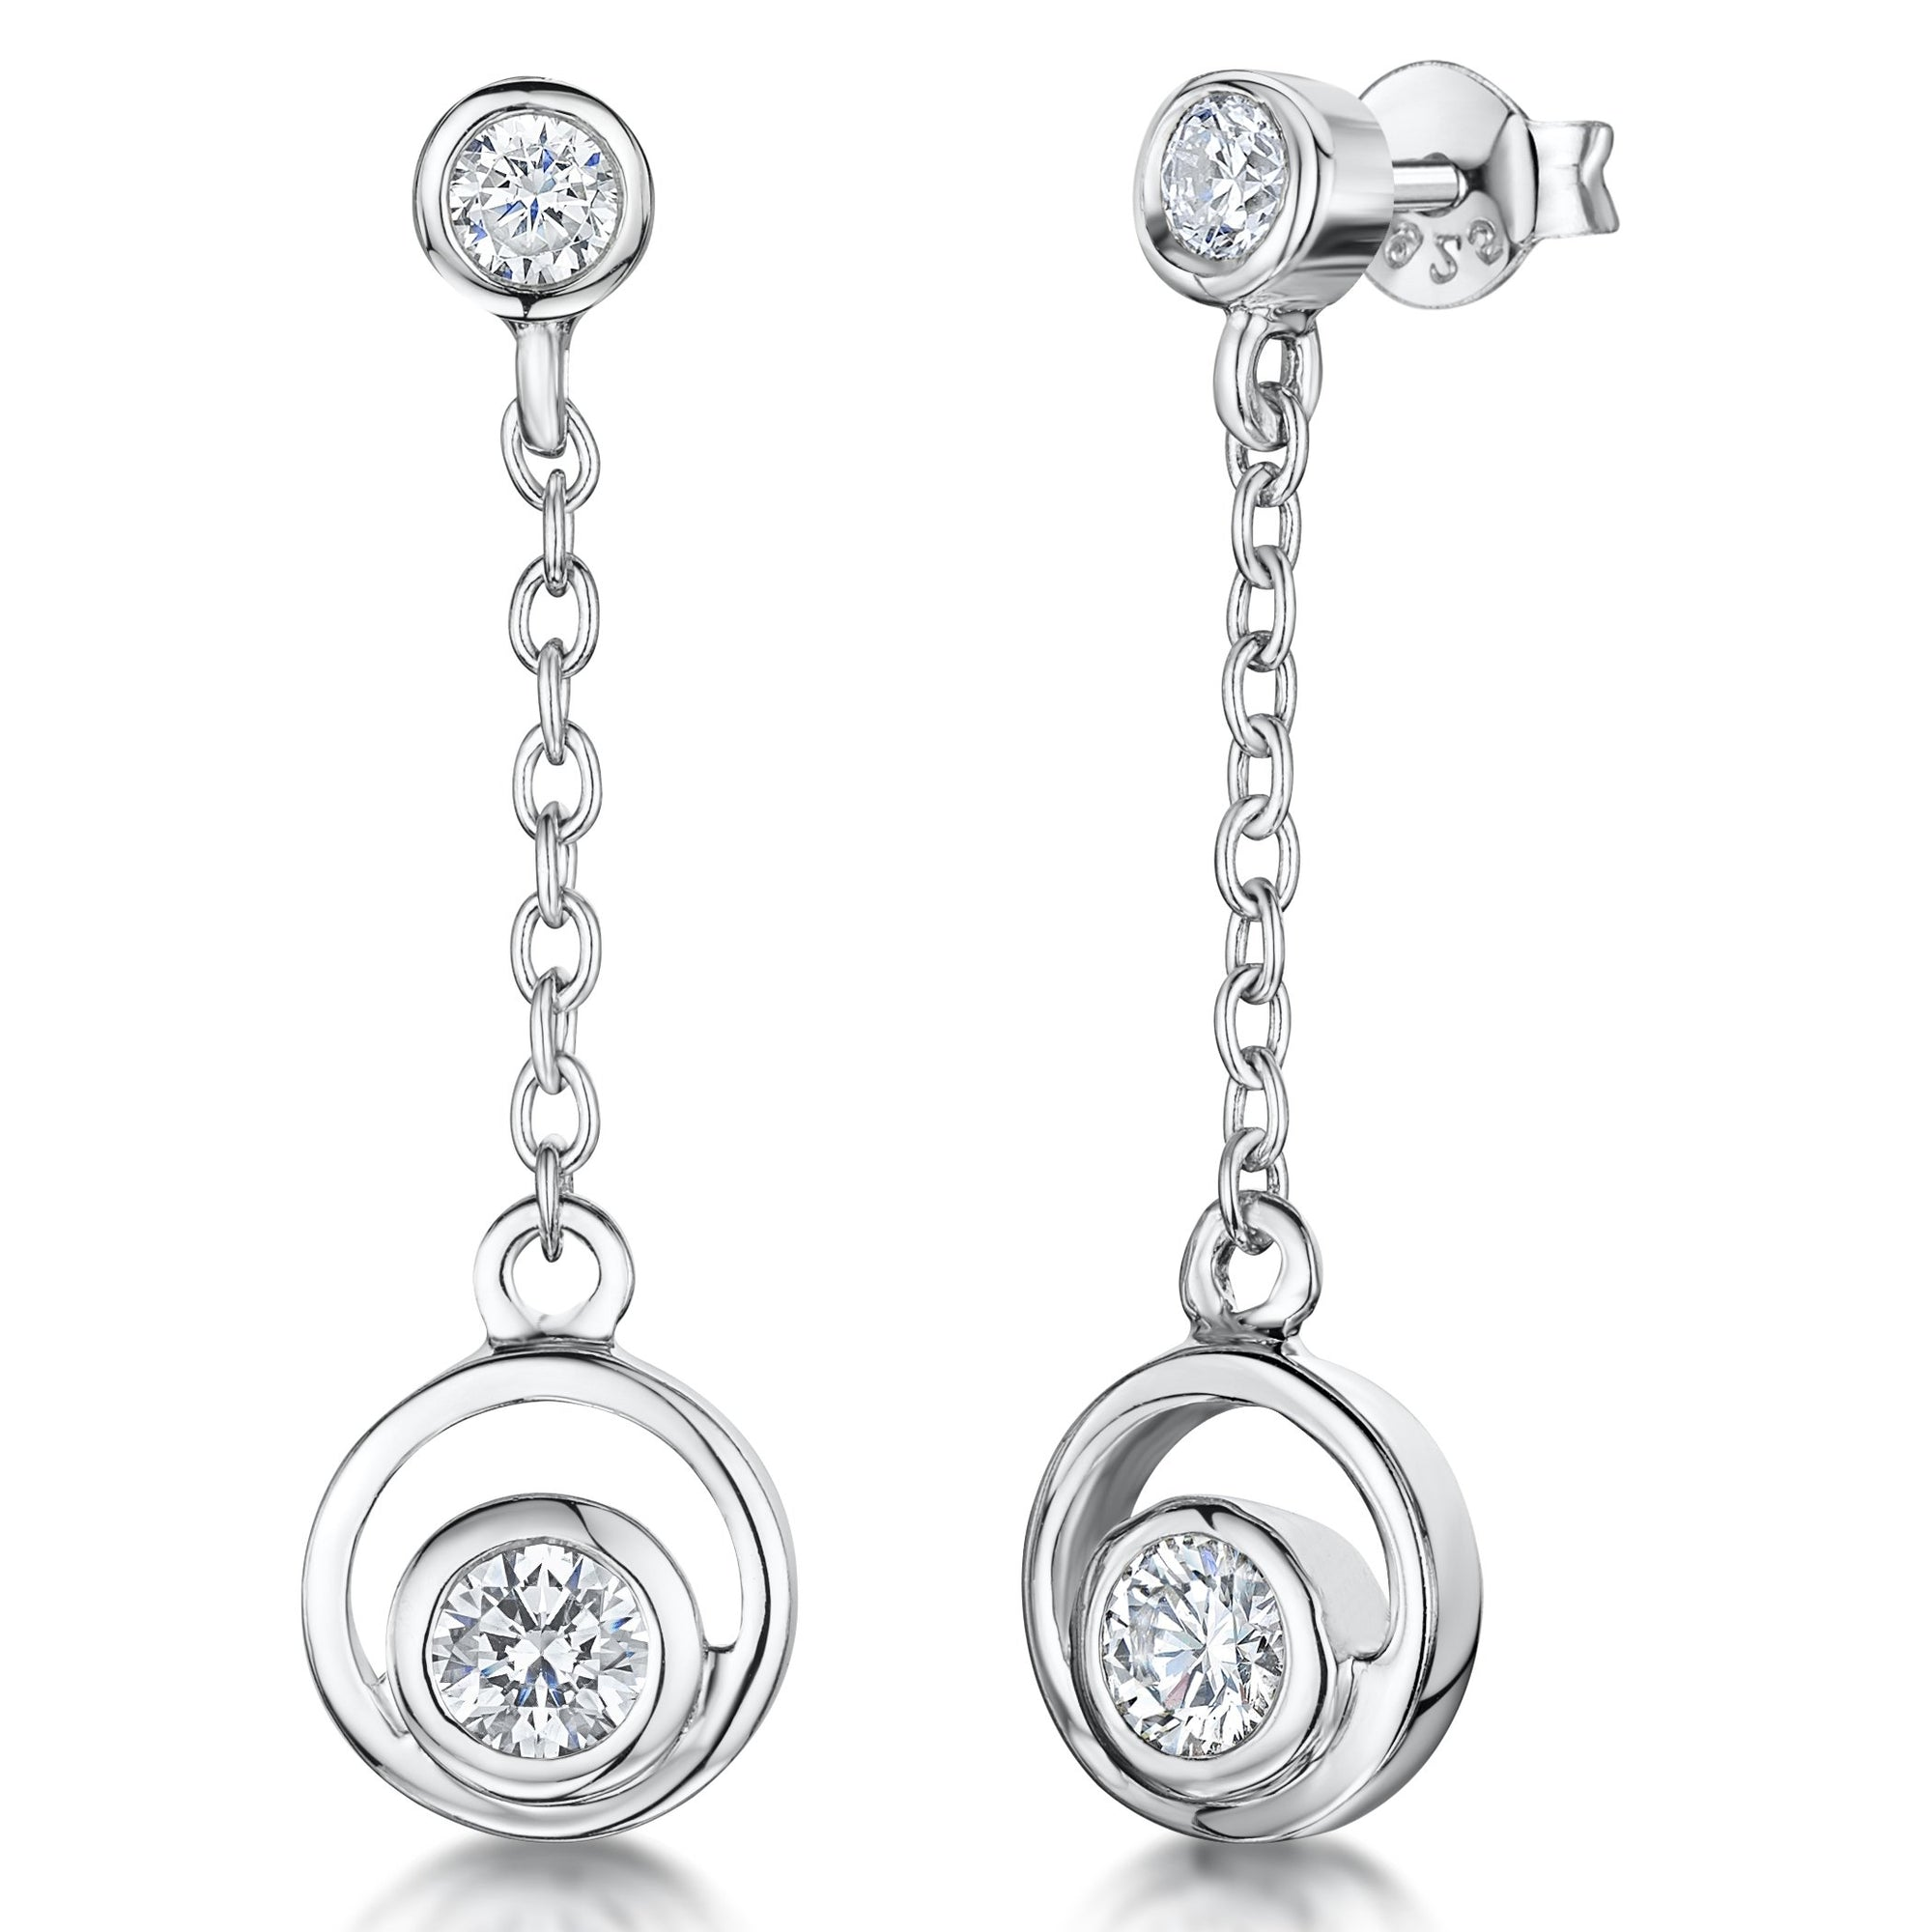 Sterling Silver and Cubic Zirconia Stones Circle  Drop EarringsEarrings - JOOLS By Jenny Brown